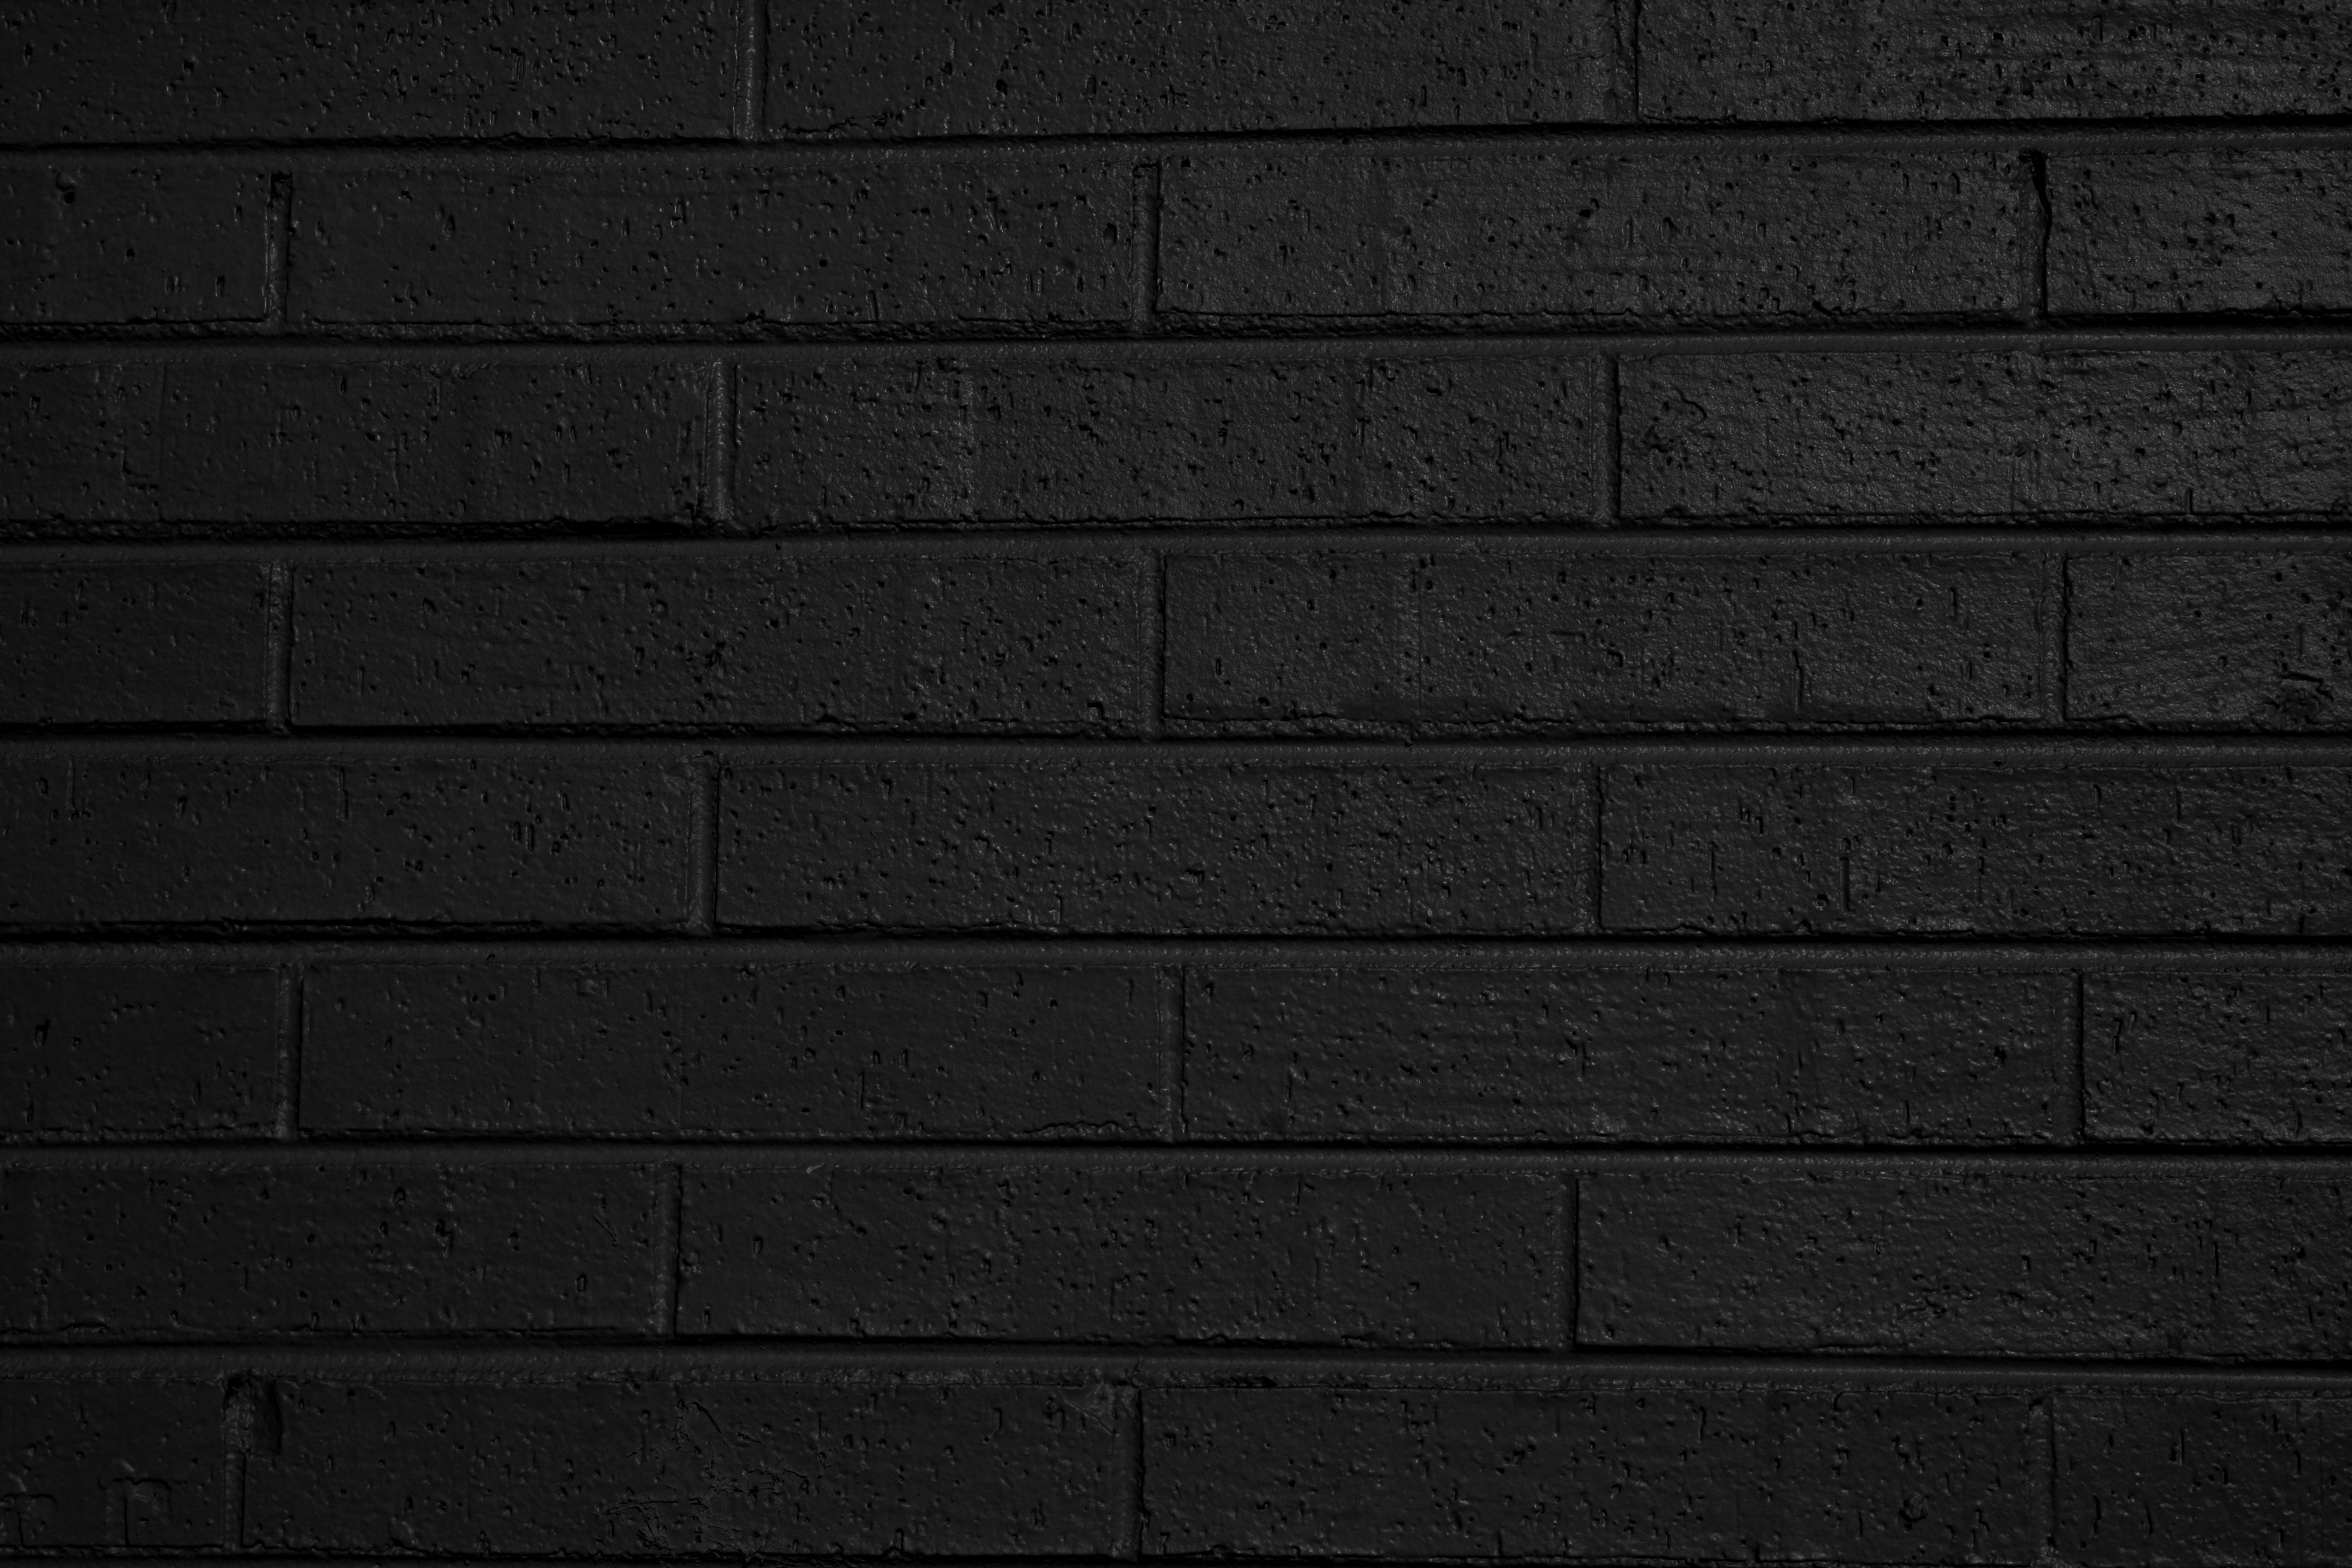 Black Wall Paint black pictures | free photographs | photos public domain - part 2